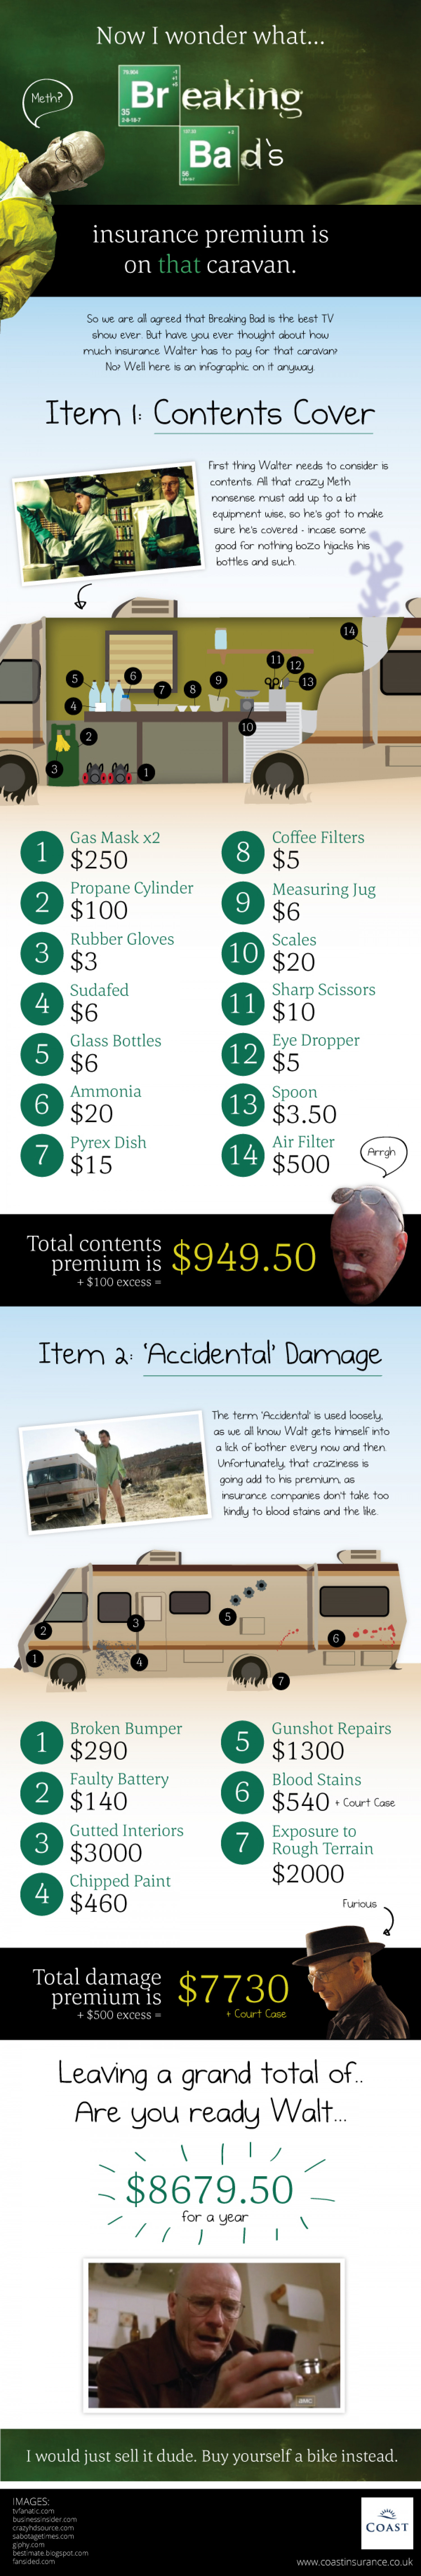 How much would Breaking Bad's Caravan cost to insure? Infographic